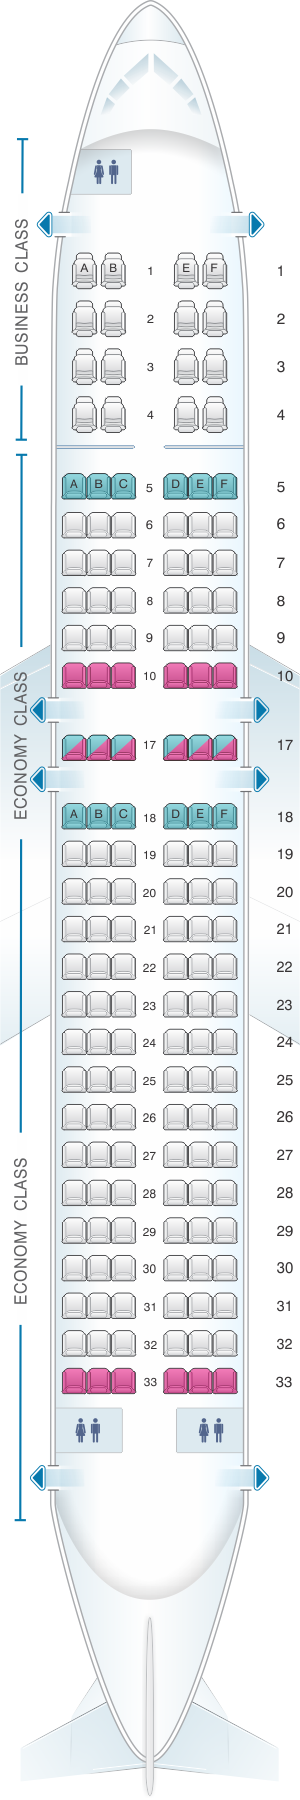 Seat map for Copa Airlines Boeing B737 800B